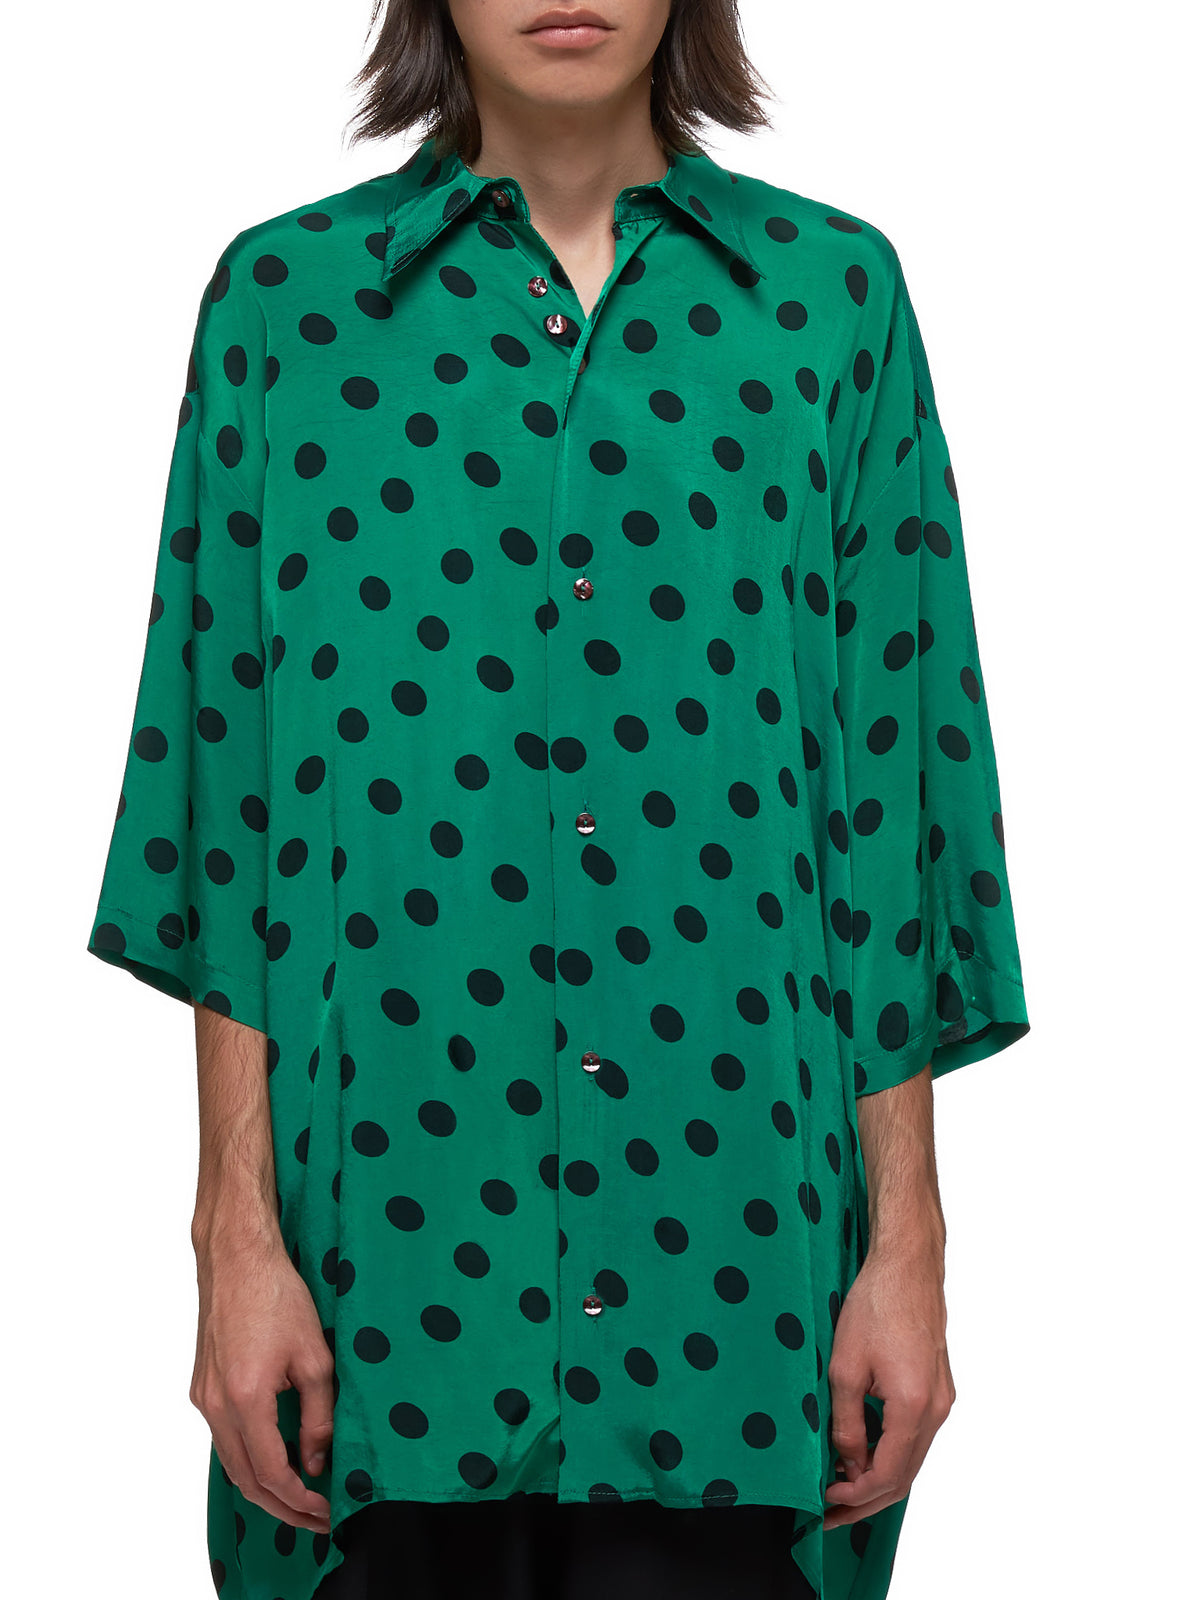 Polka Dot Shirt (H28006512-GREEN)